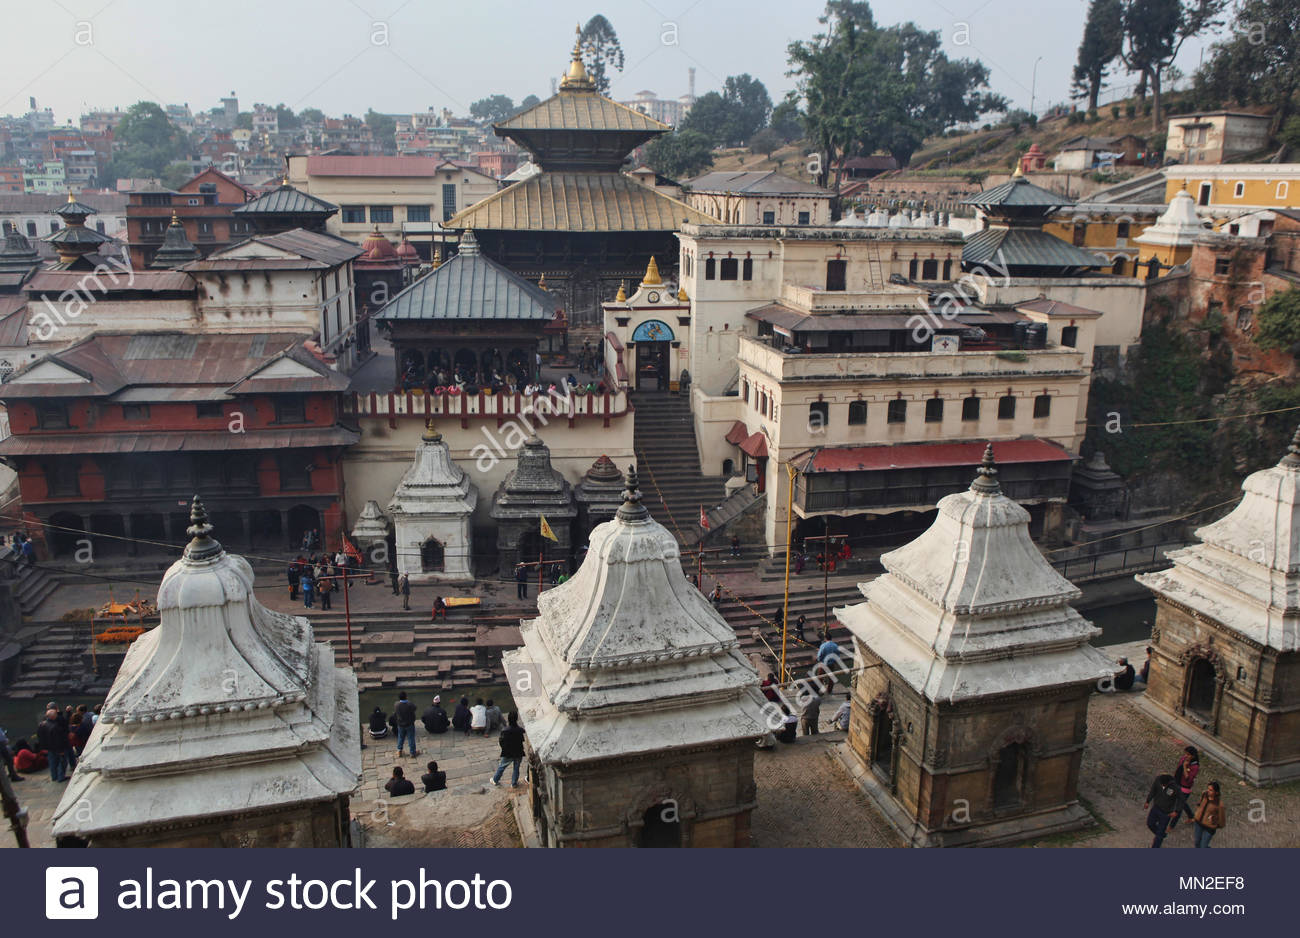 Chaityas stand amongst other buildings in the Hindu temple